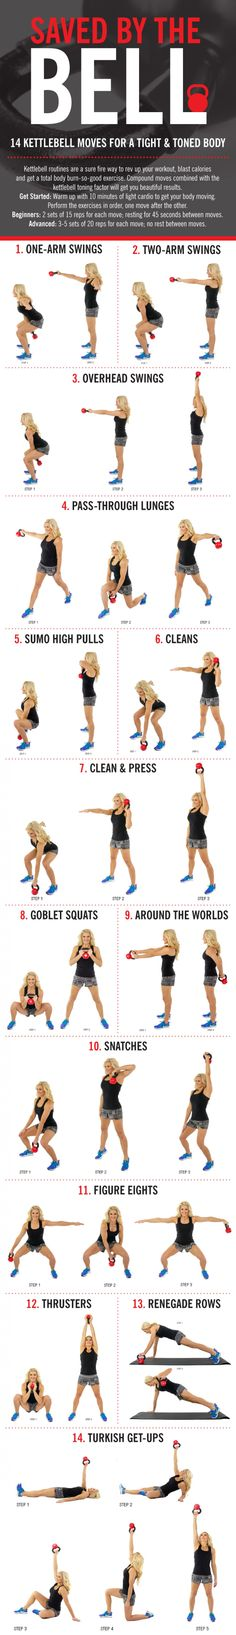 14 #kettleball moves for a tight & toned body. these types of exercises are awesome for martial arts especially mma